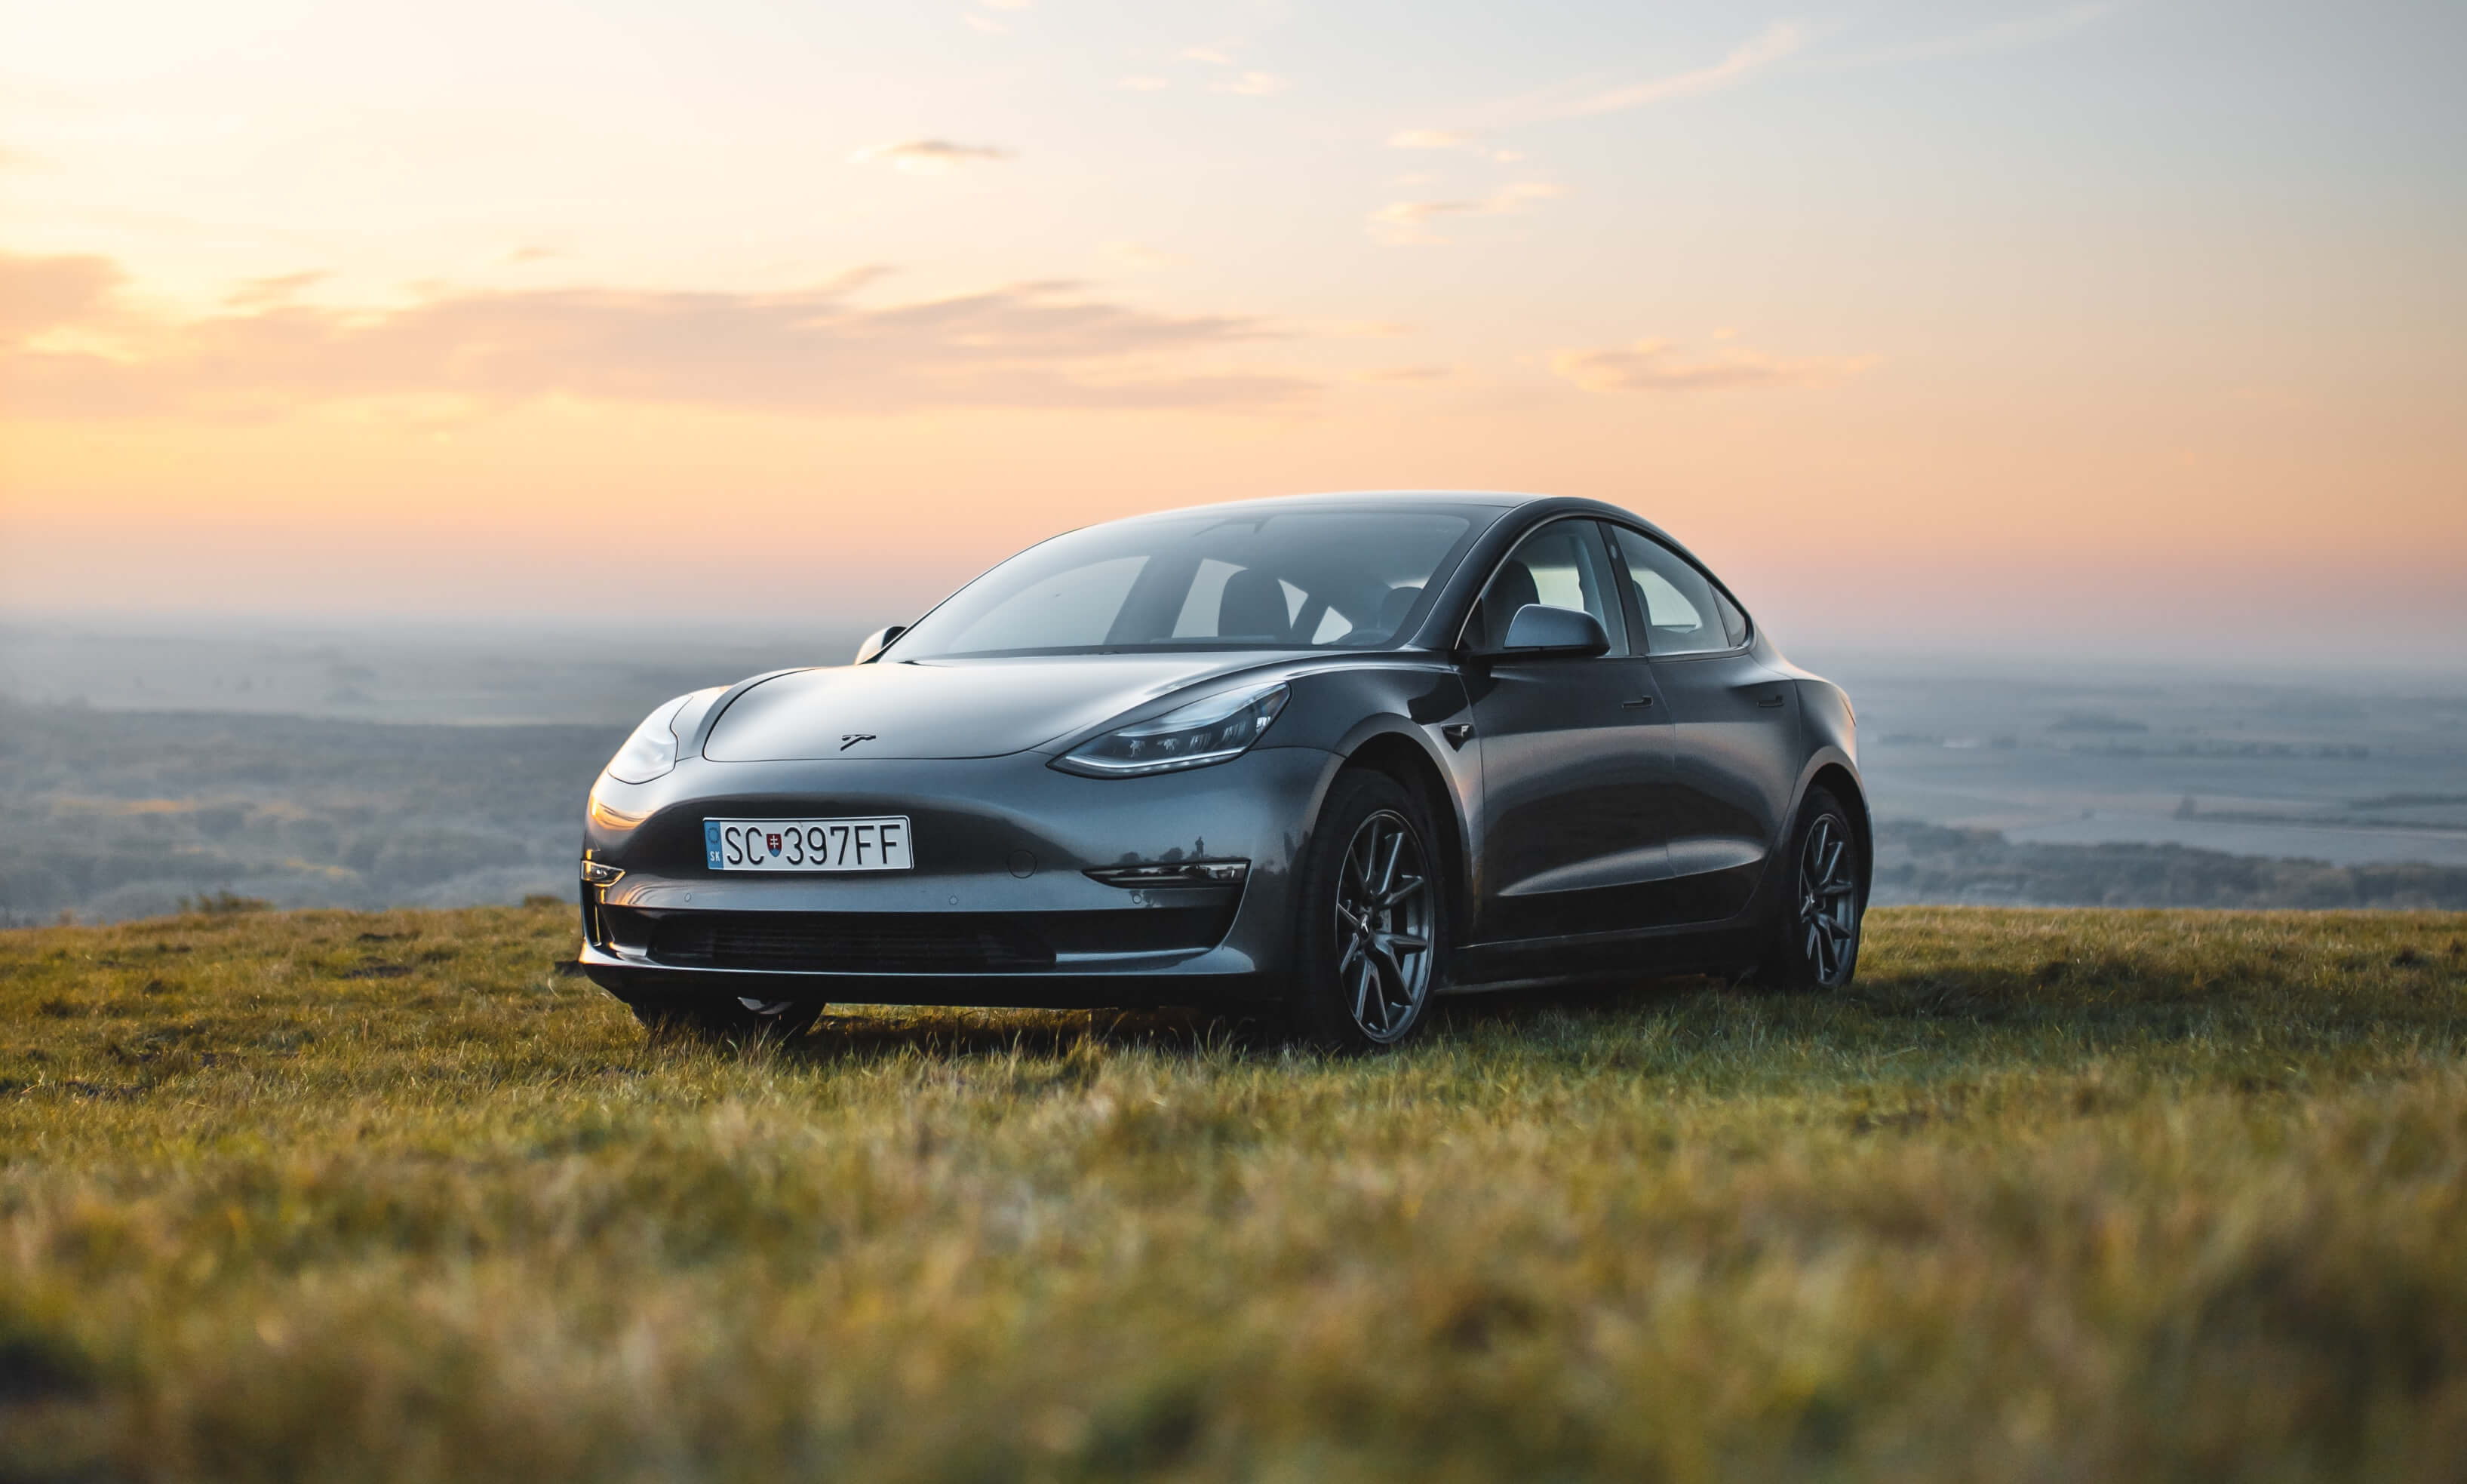 A Tesla car majestically perched on a hill at sunset.